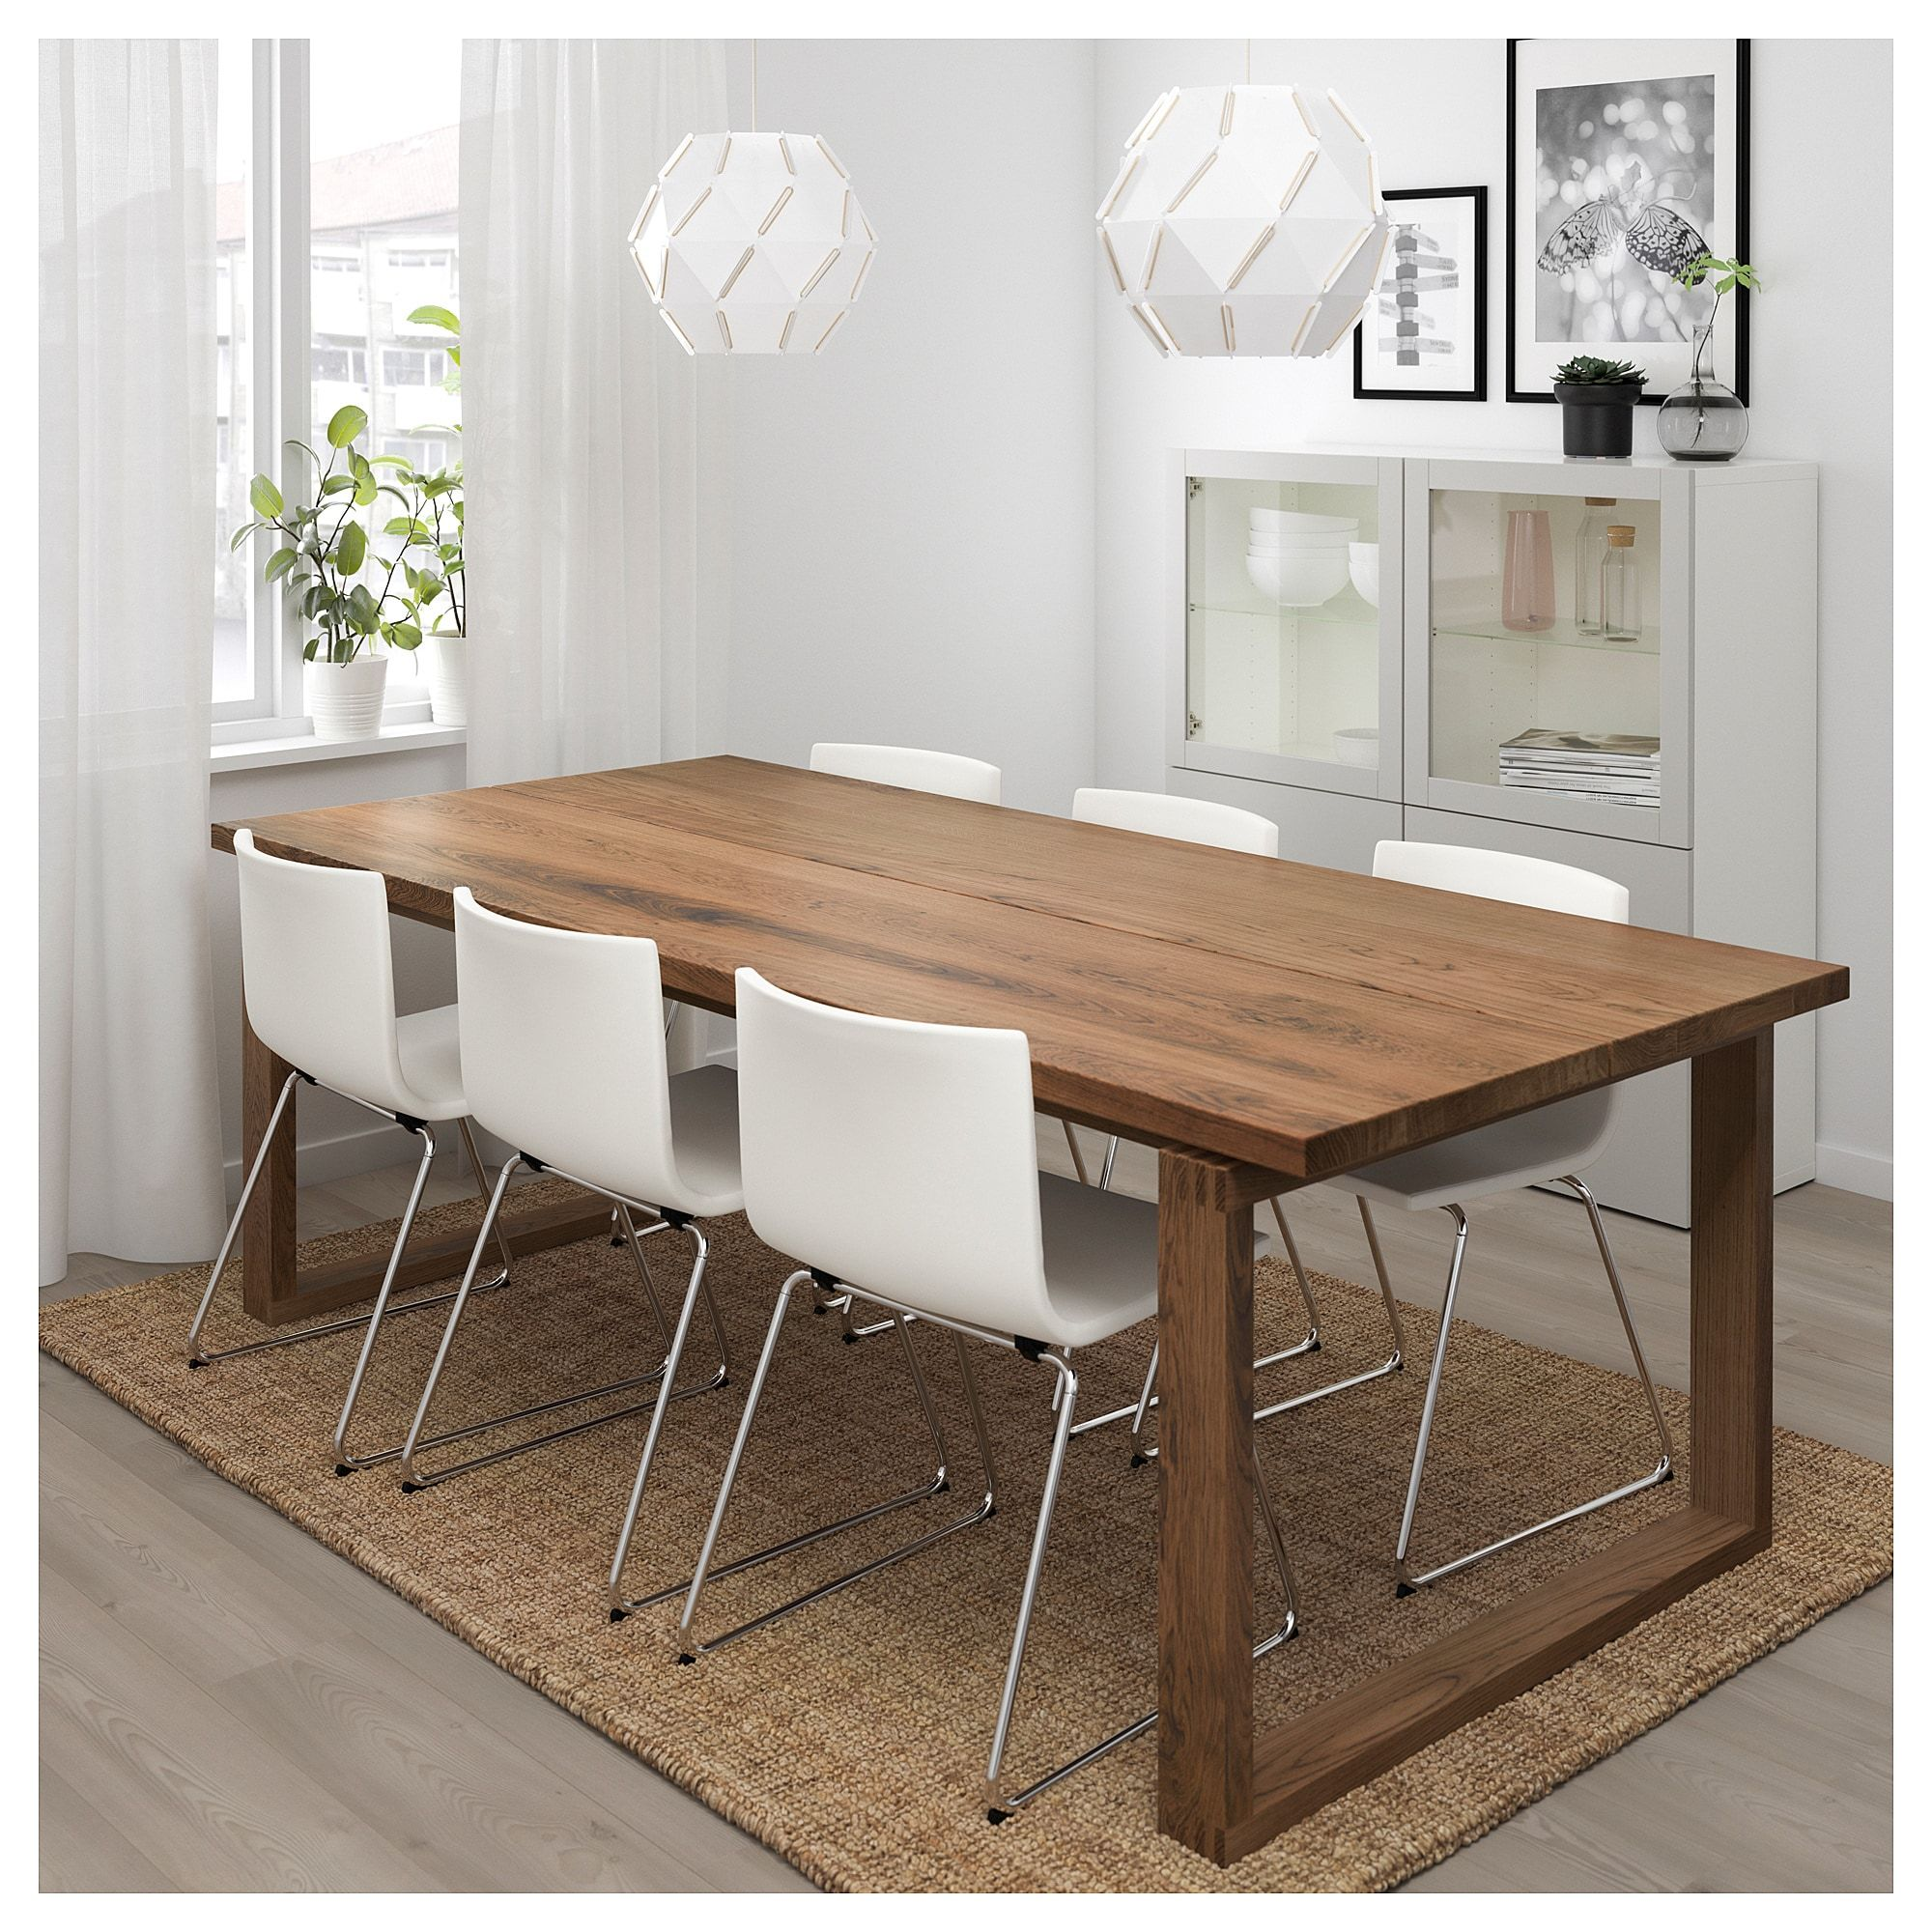 Ikea MÖrbylÅnga Bernhard Table And 6 Chairs Brown Kavat White